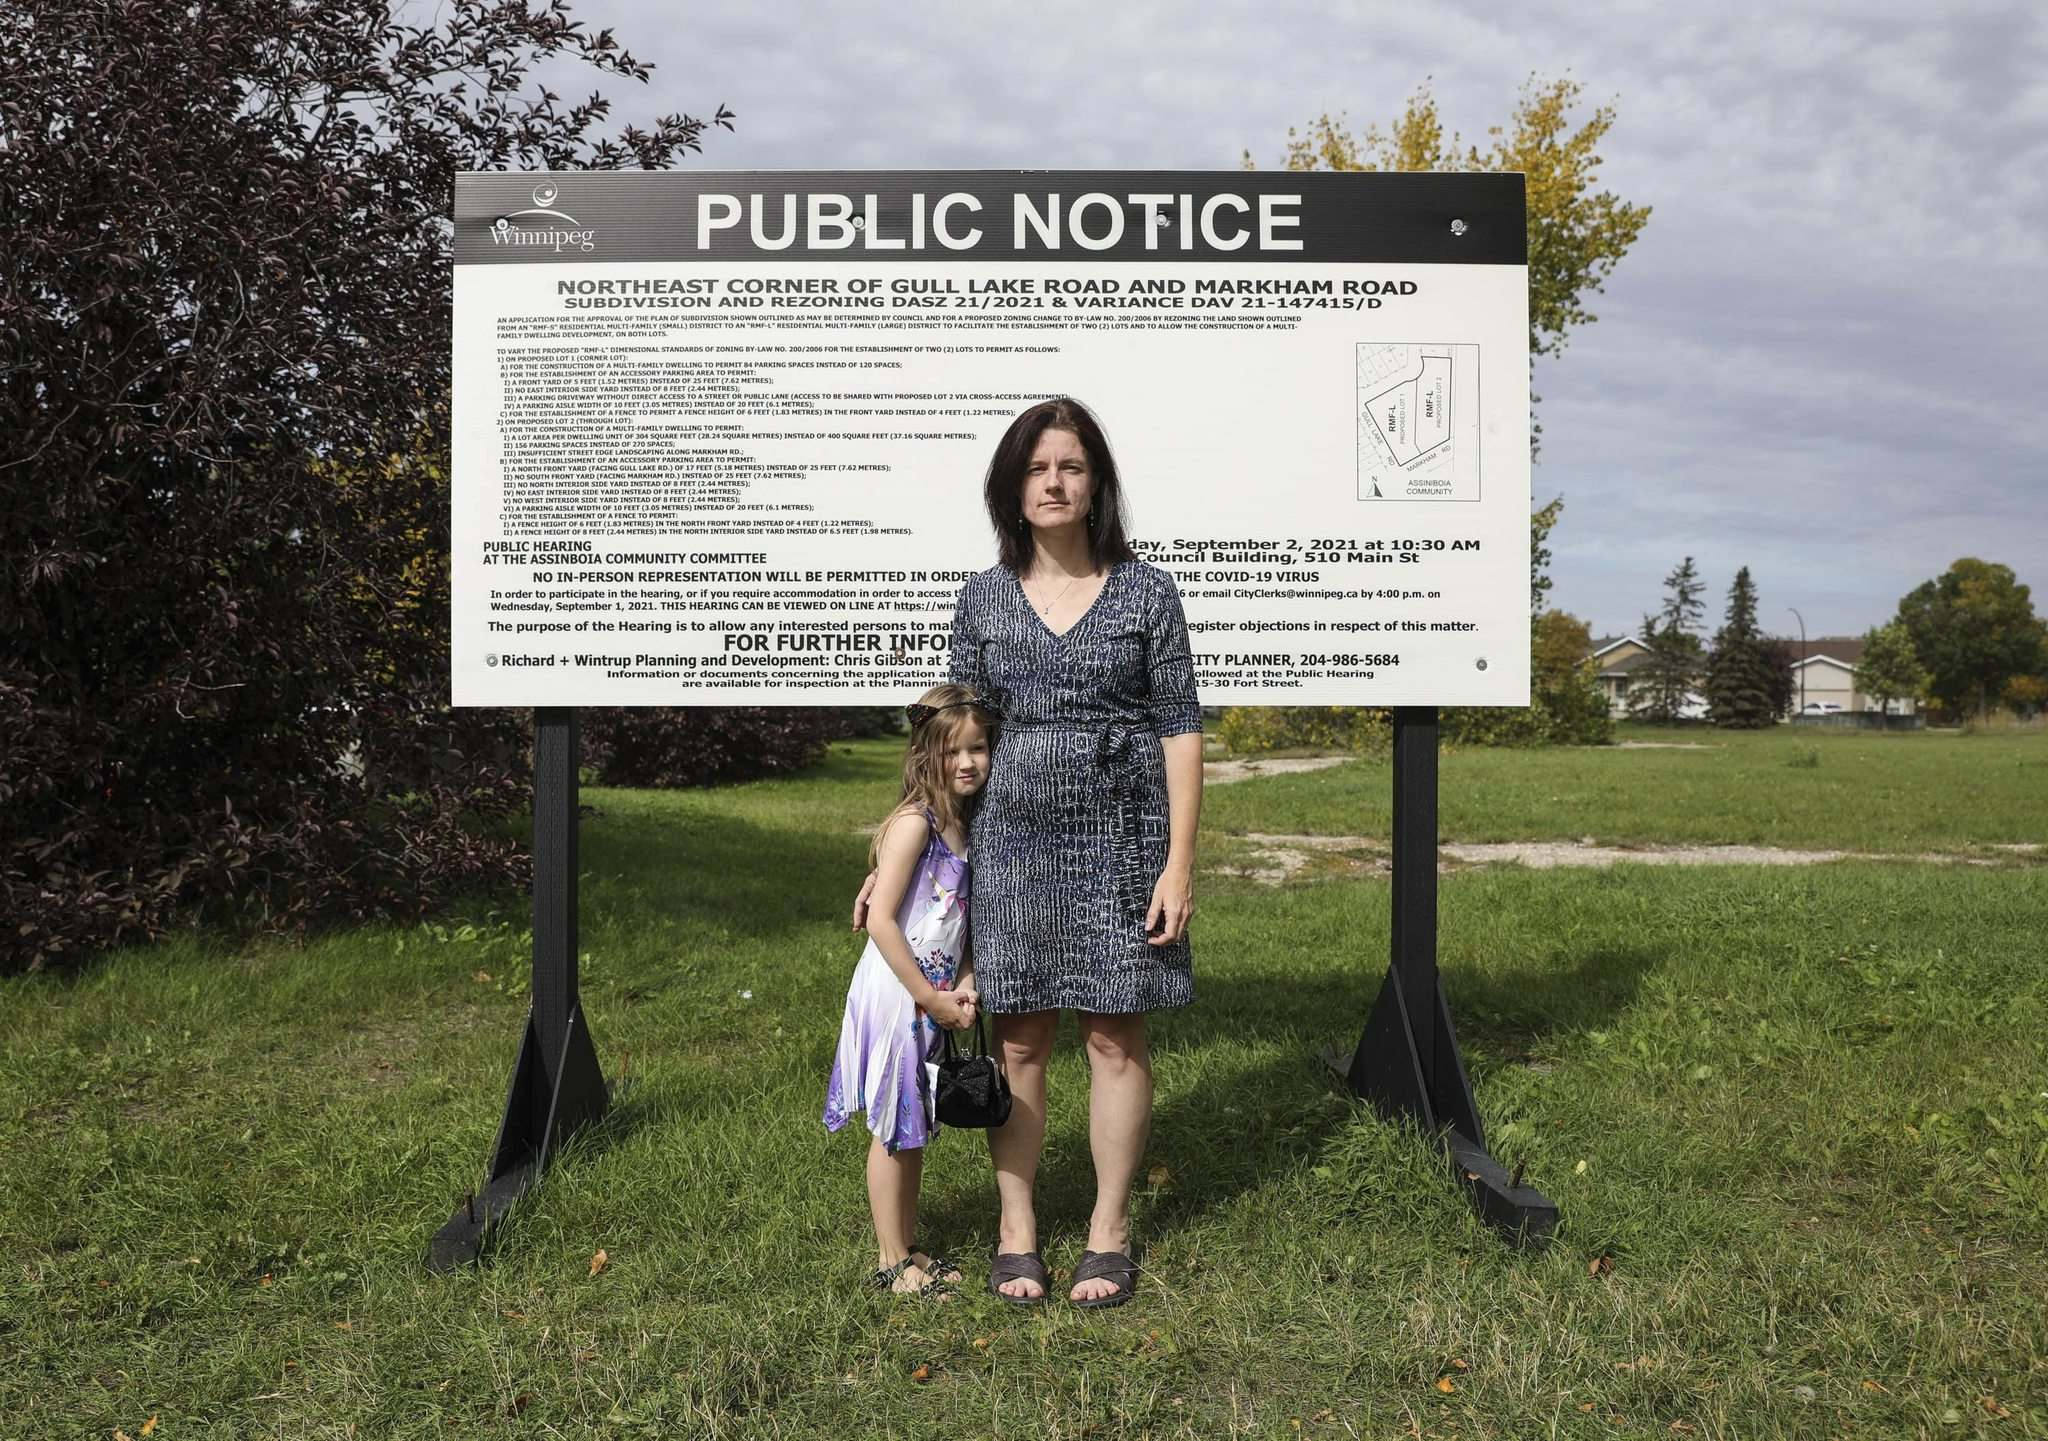 JESSICA LEE / WINNIPEG FREE PRESS</p><p>Audrey VanderSpek, with daughter Lara, said residents expect the plan could lower property values for surrounding homes and entirely obstruct some views.</p>